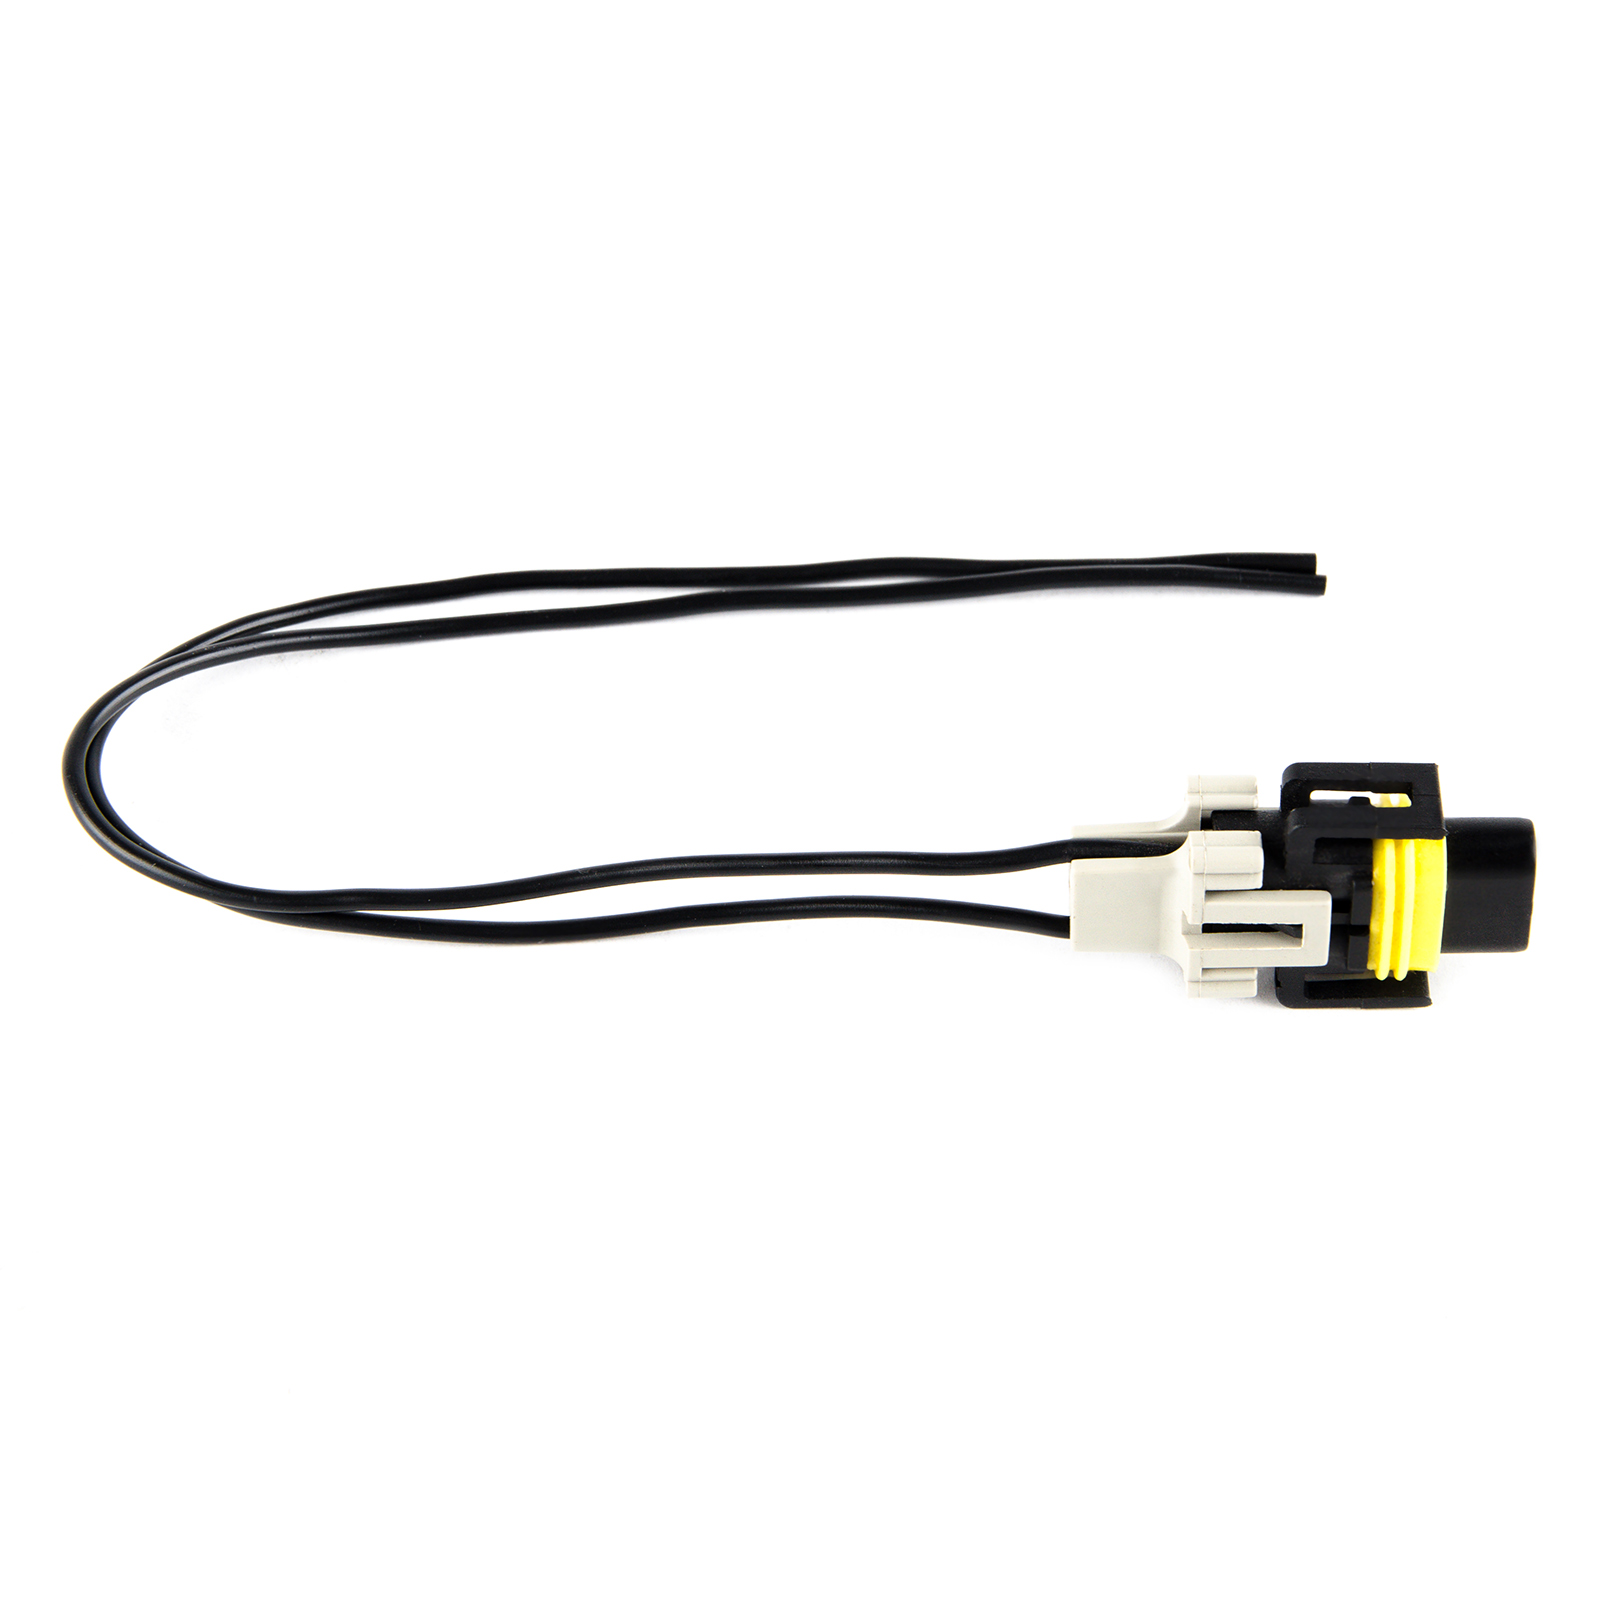 hight resolution of for gm 700r4 t5 4l60e vss vehicle speed sensor connector wiring harness plug